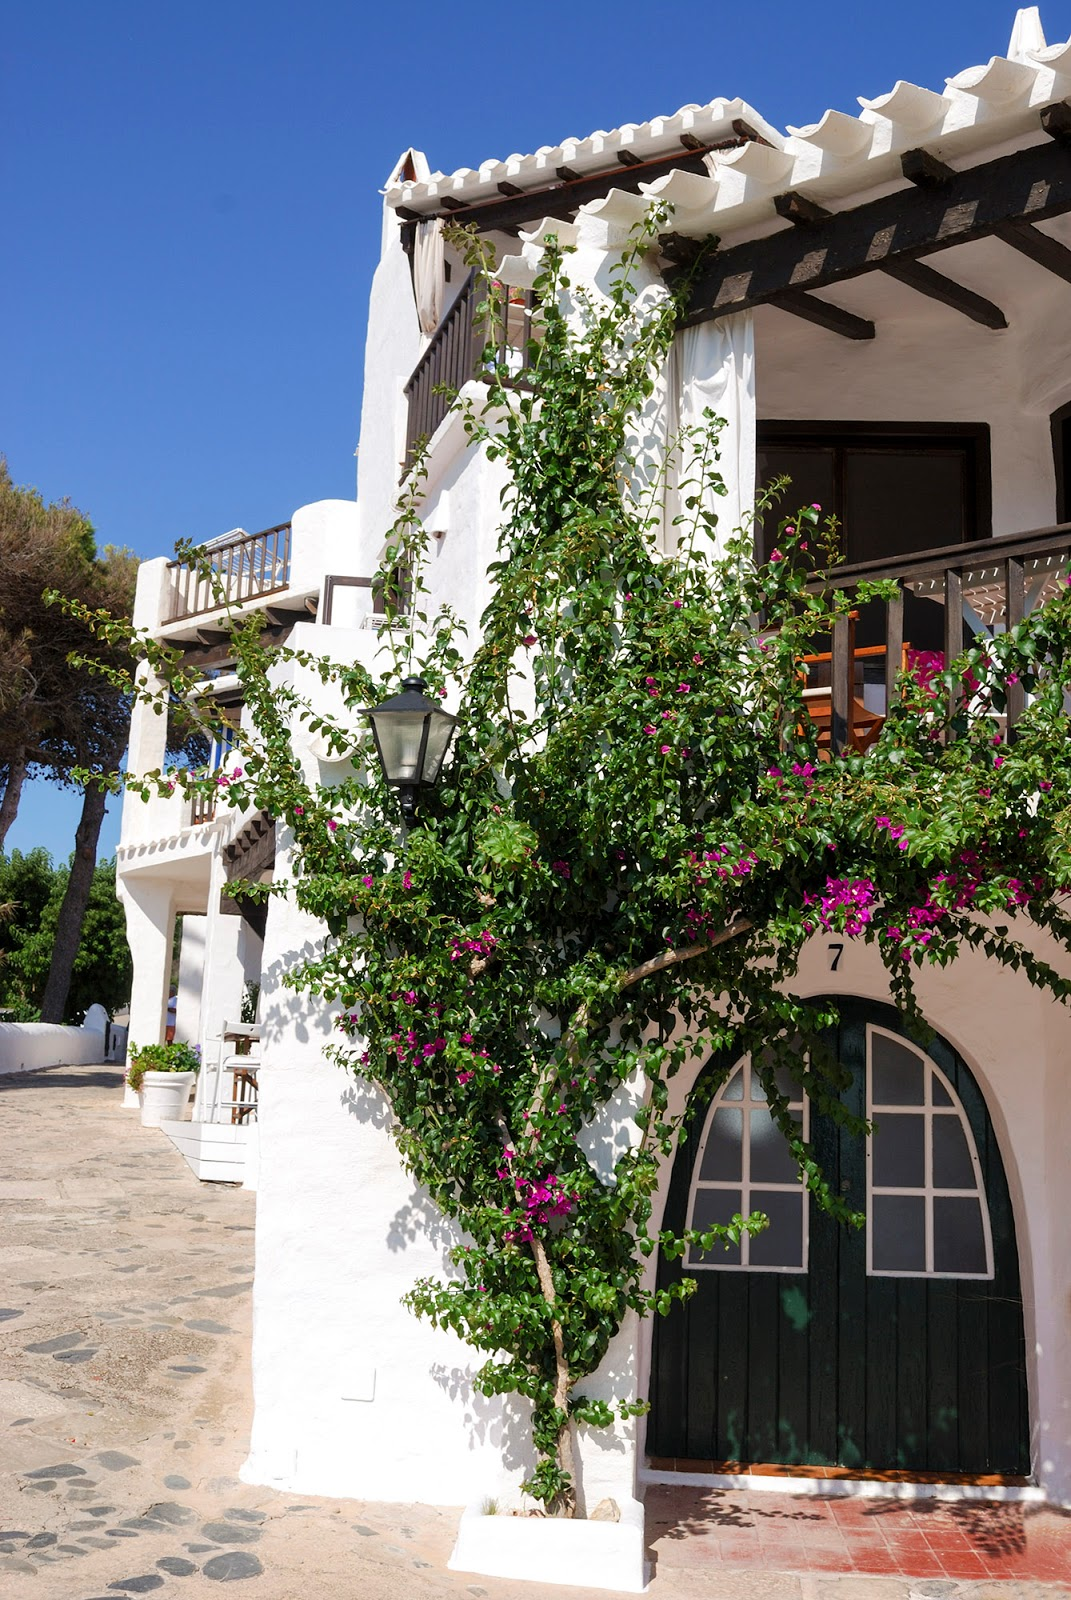 Binibequer Vell Menorca Spain itinerary what to do